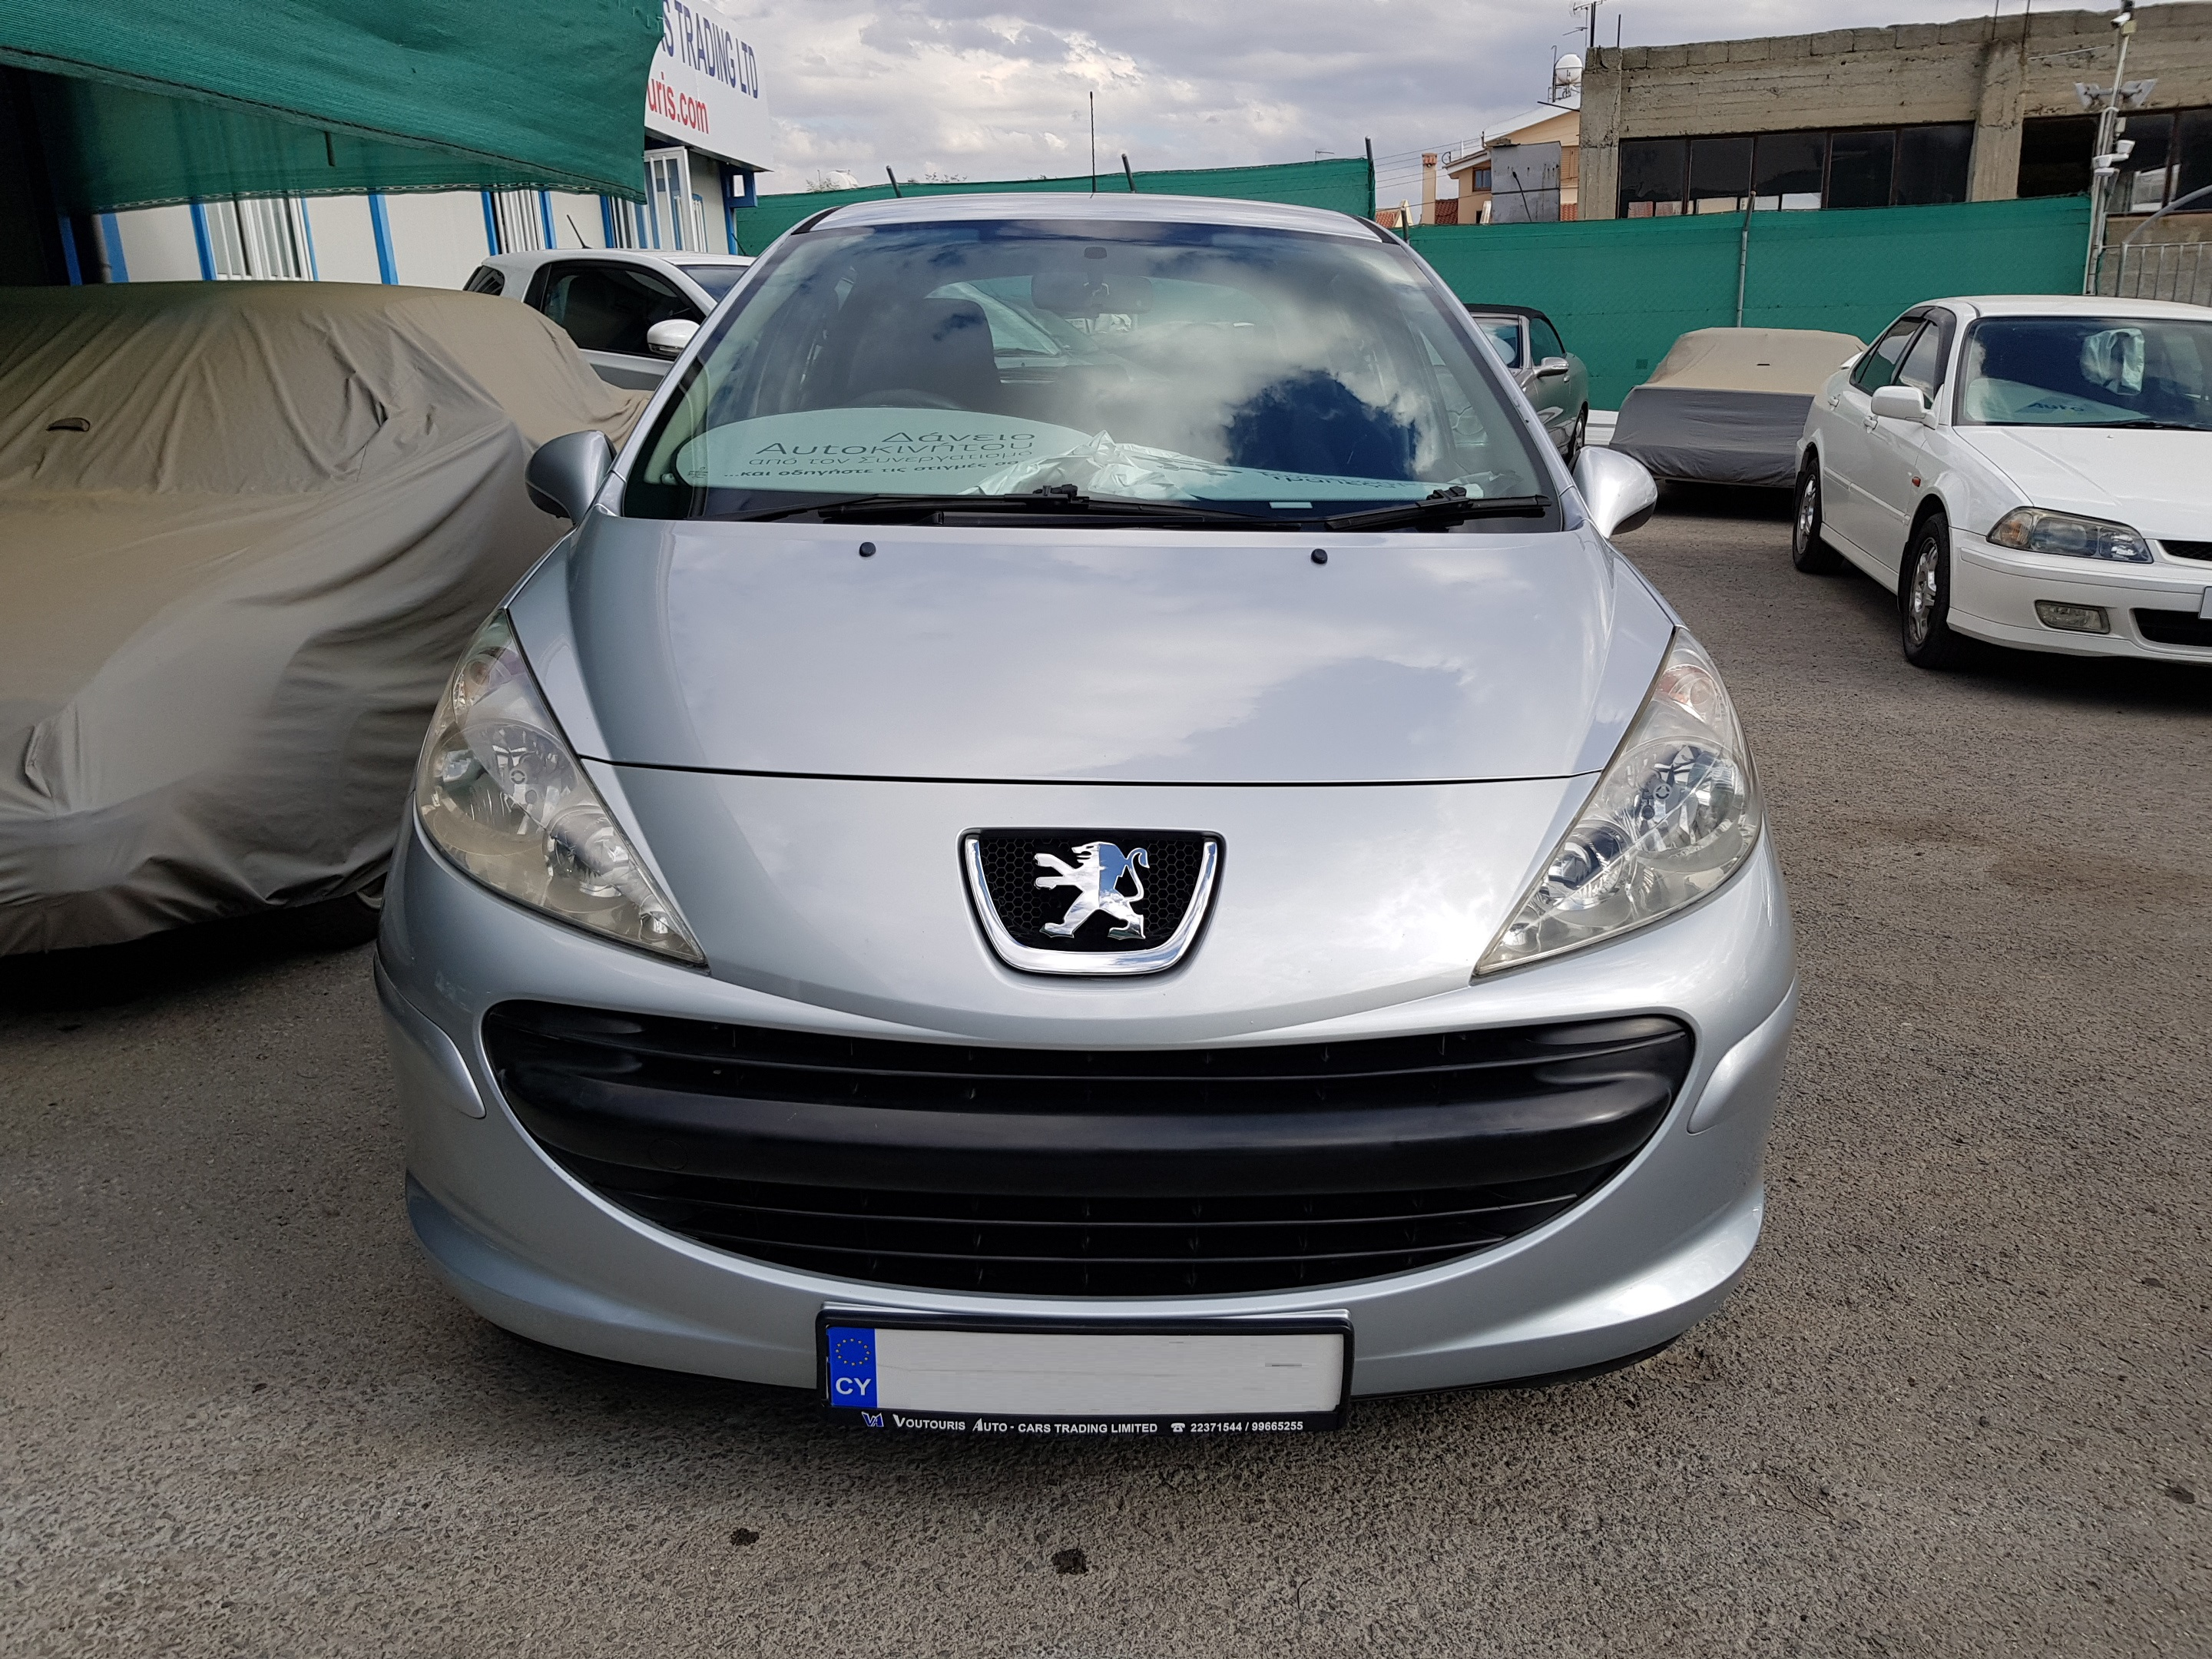 Peugeot 207 Silver 04